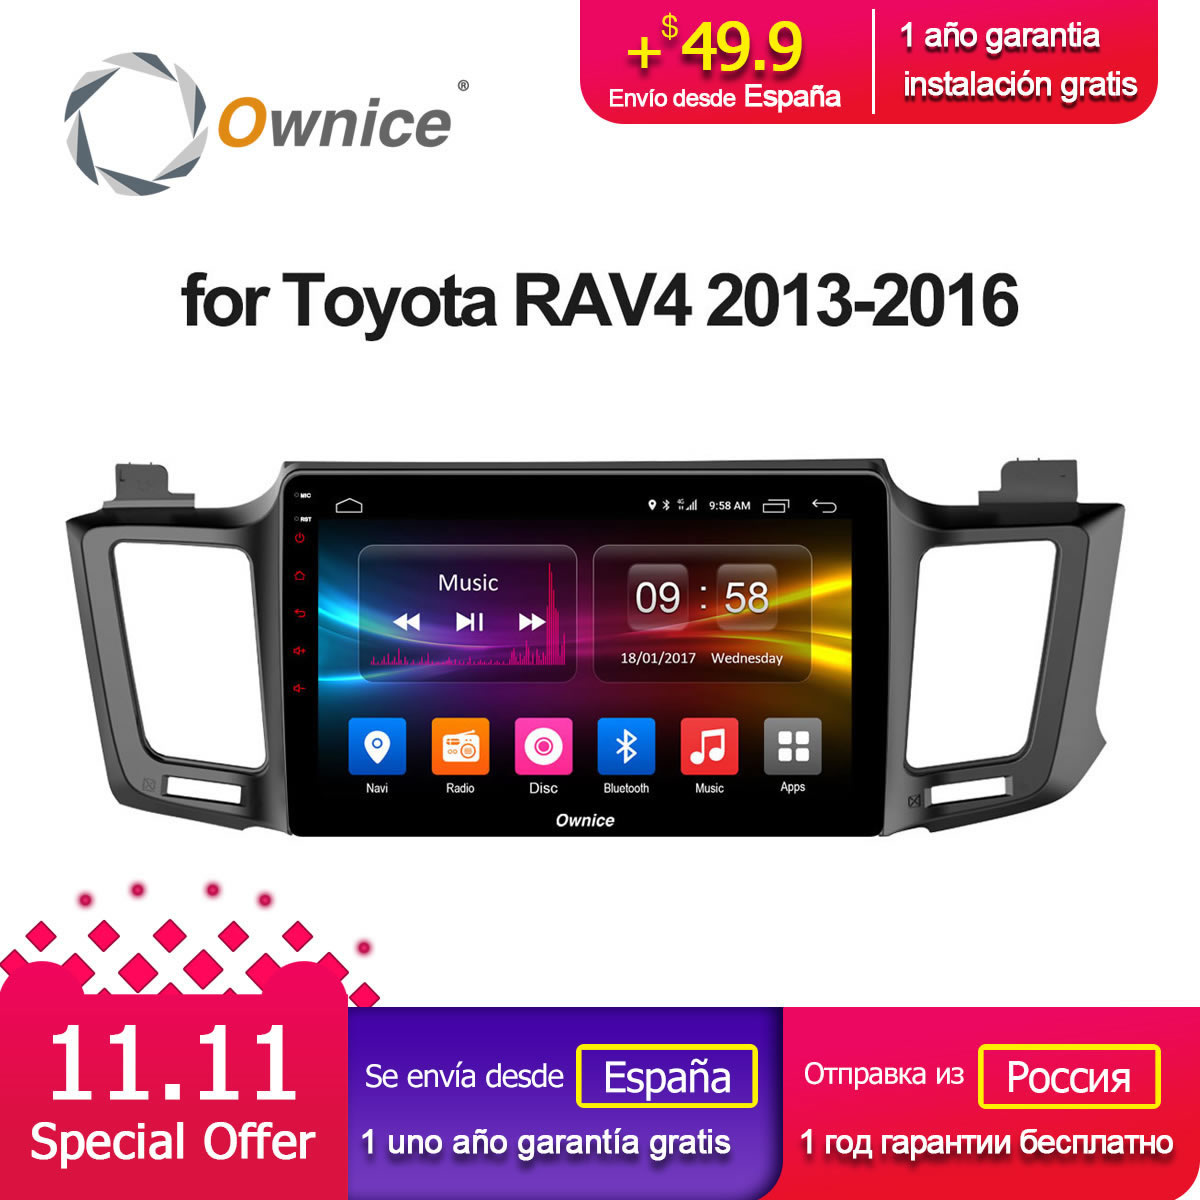 10.1 Ownice C500+ G10 Android 8.1 Octa 8 Core For Toyota RAV4 2013-2015 2016 Car DVD player Navigation GPS Radio 2G RAM 4G LTE 10 1 ownice c500 g10 octa 8 core android 8 1 car dvd gps player for toyota tundra 2007 2013 sequoia 2008 2018 stereo radio